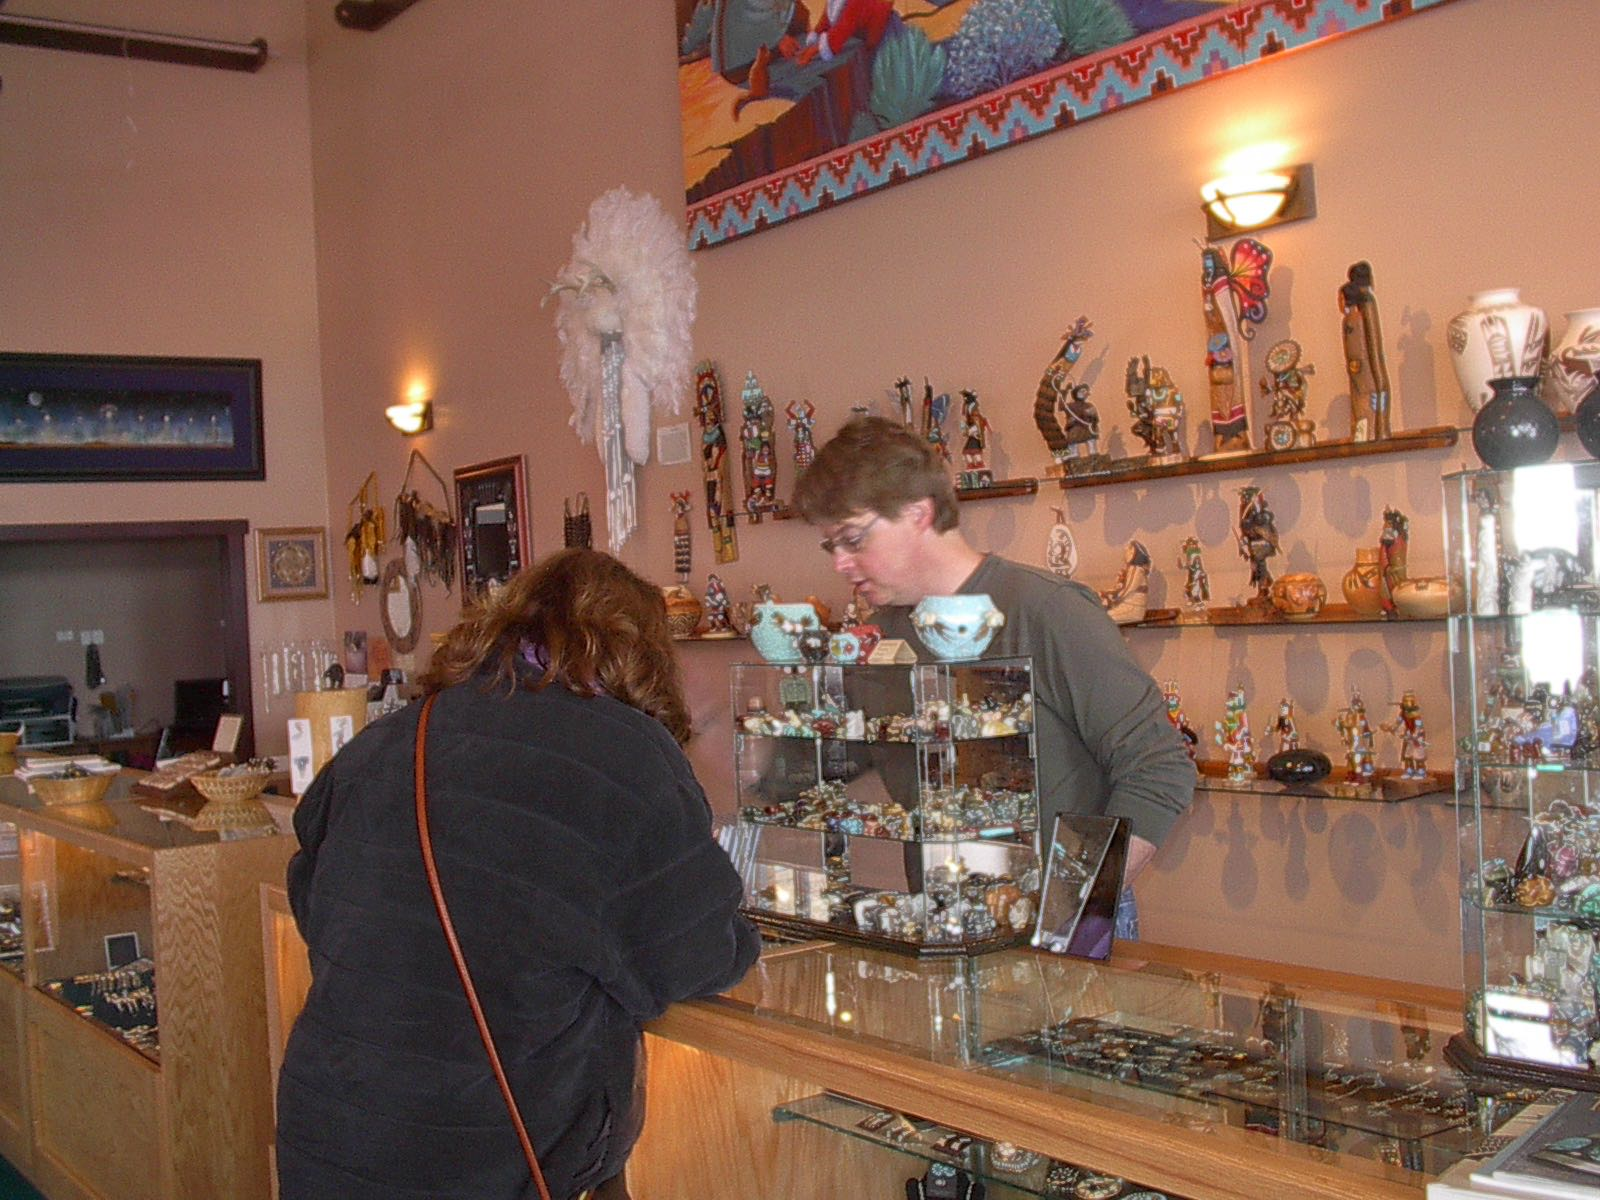 Abby Shopping For Kachinas in Flagstaff